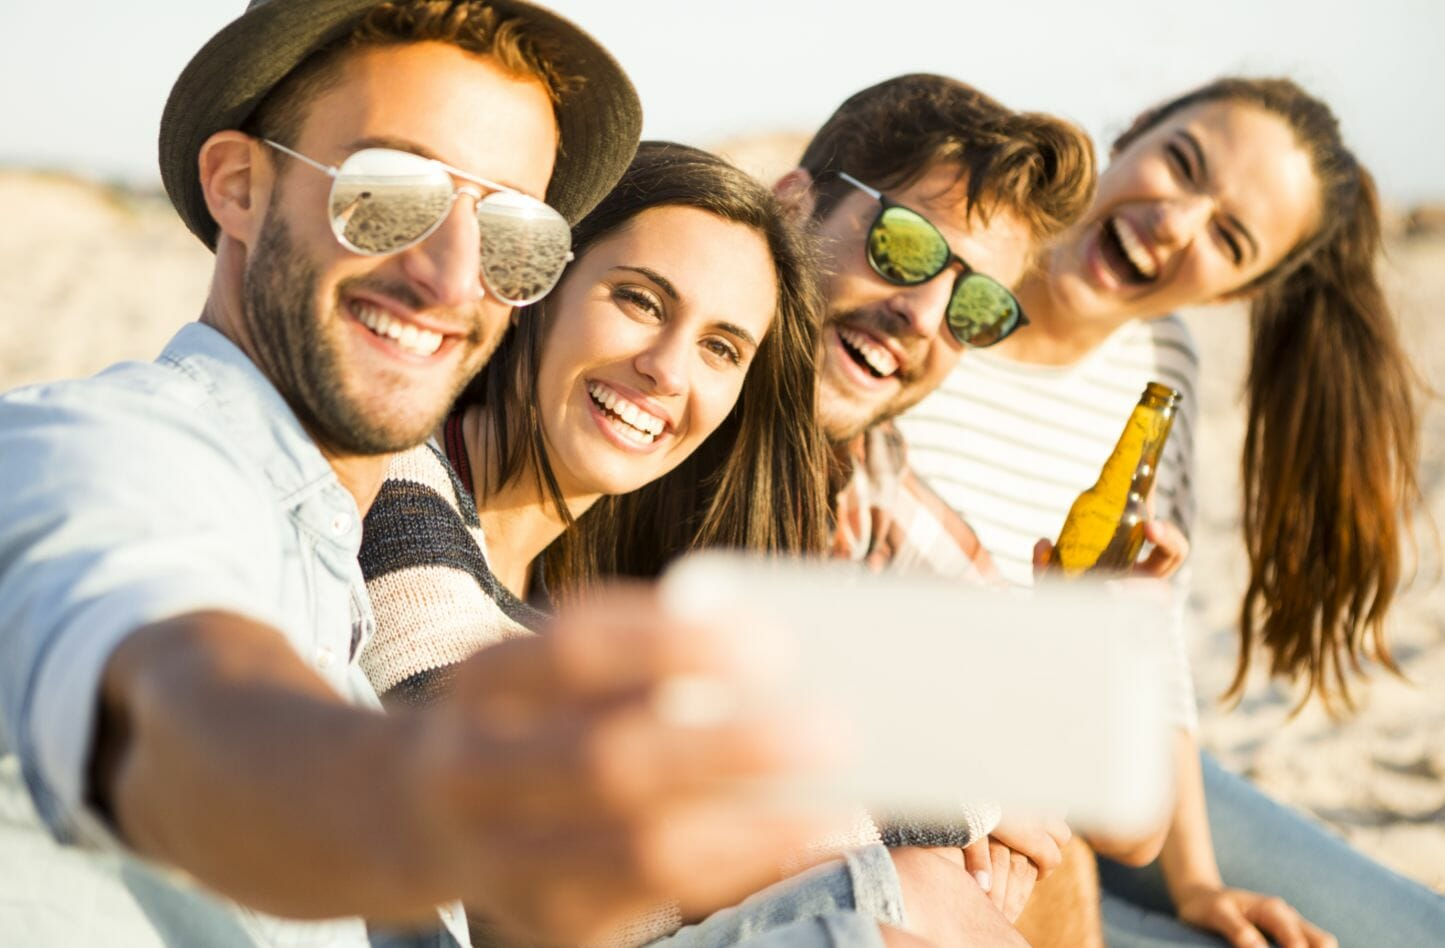 Marketing to Millennials All Boils Down to These Two Things